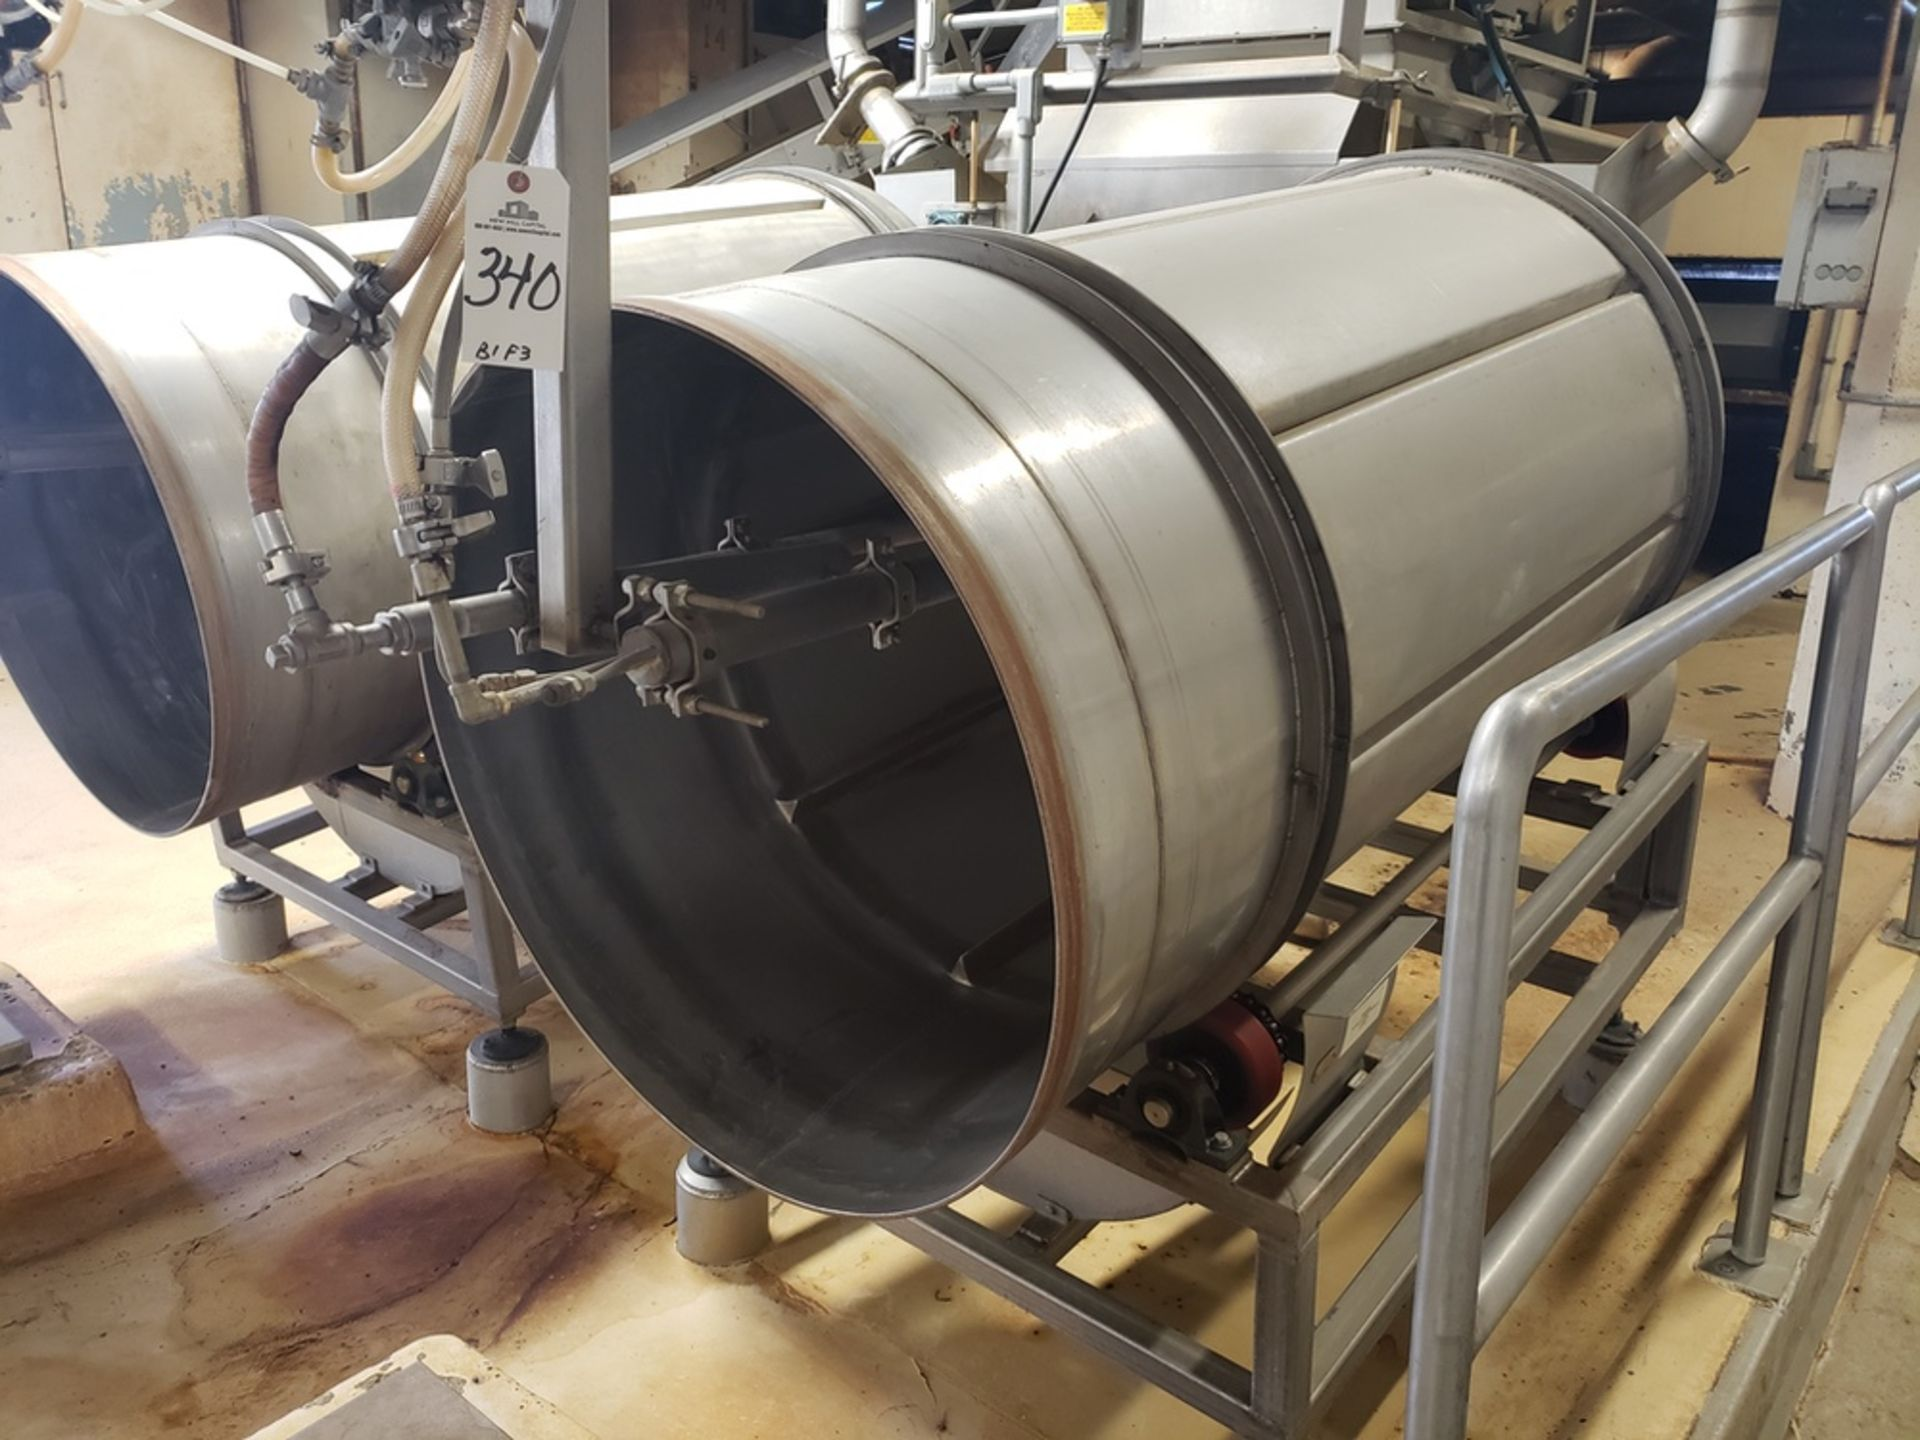 Lot 340 - Stainless Steel Glazing Tumbler | Rig Fee: $600